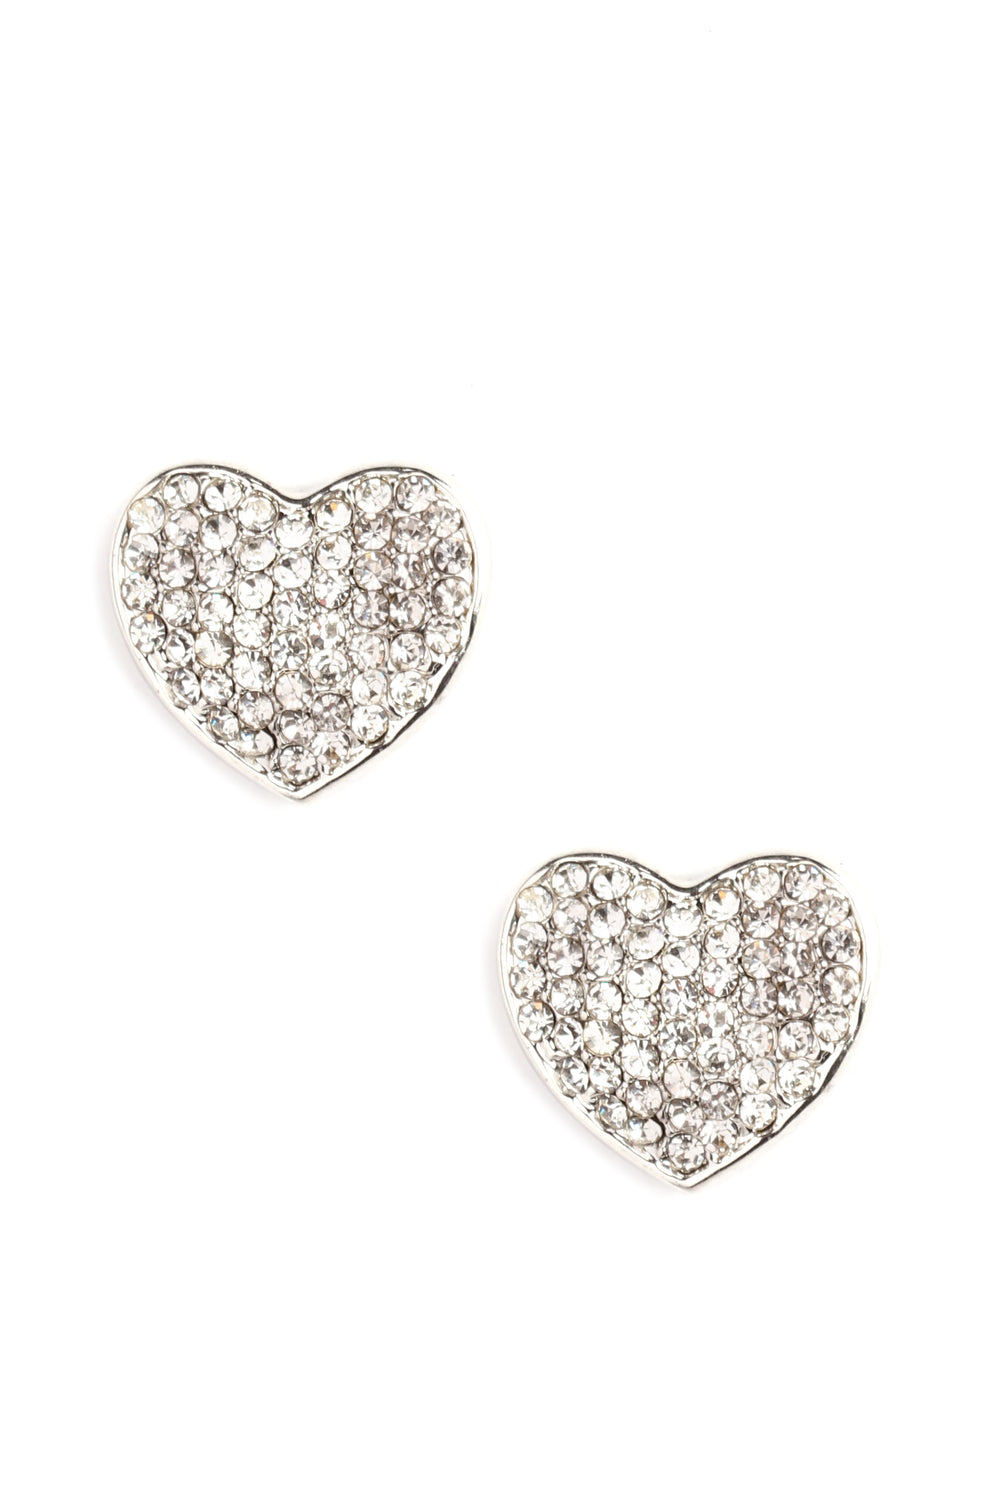 My Tiny Little Heart Earrings - Silver